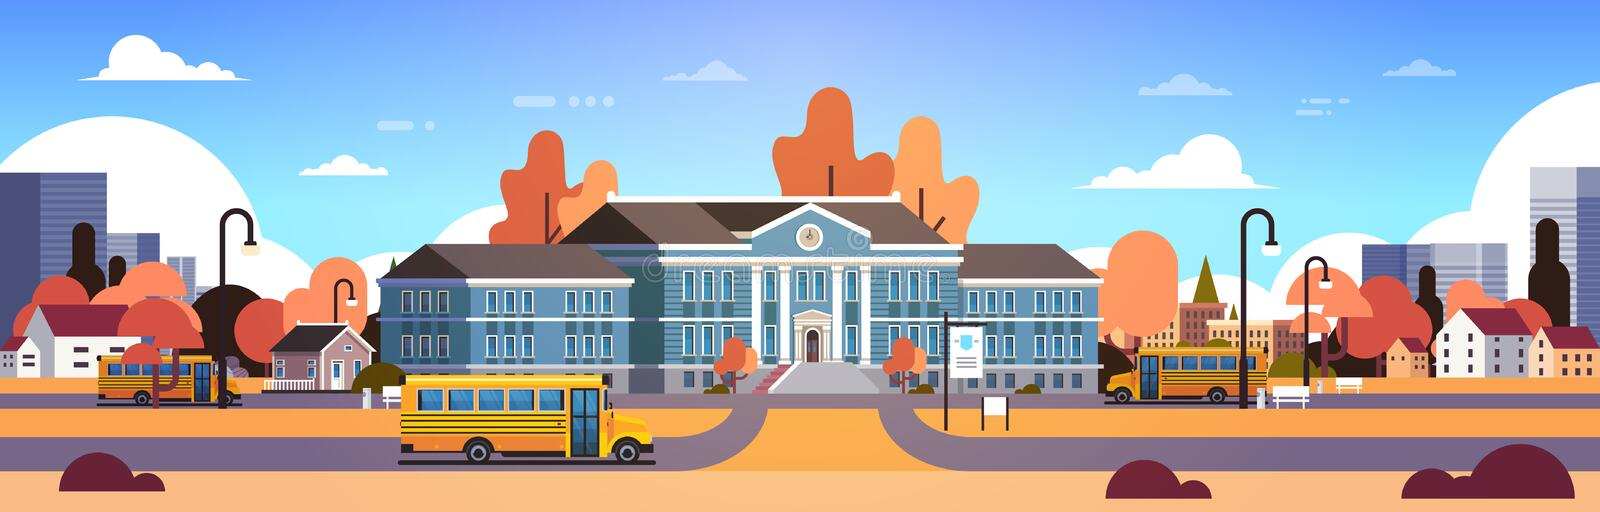 Yellow bus in front of autumn school building yard pupils transport concept 1 september cityscape background banner flat. Vector illustration royalty free illustration